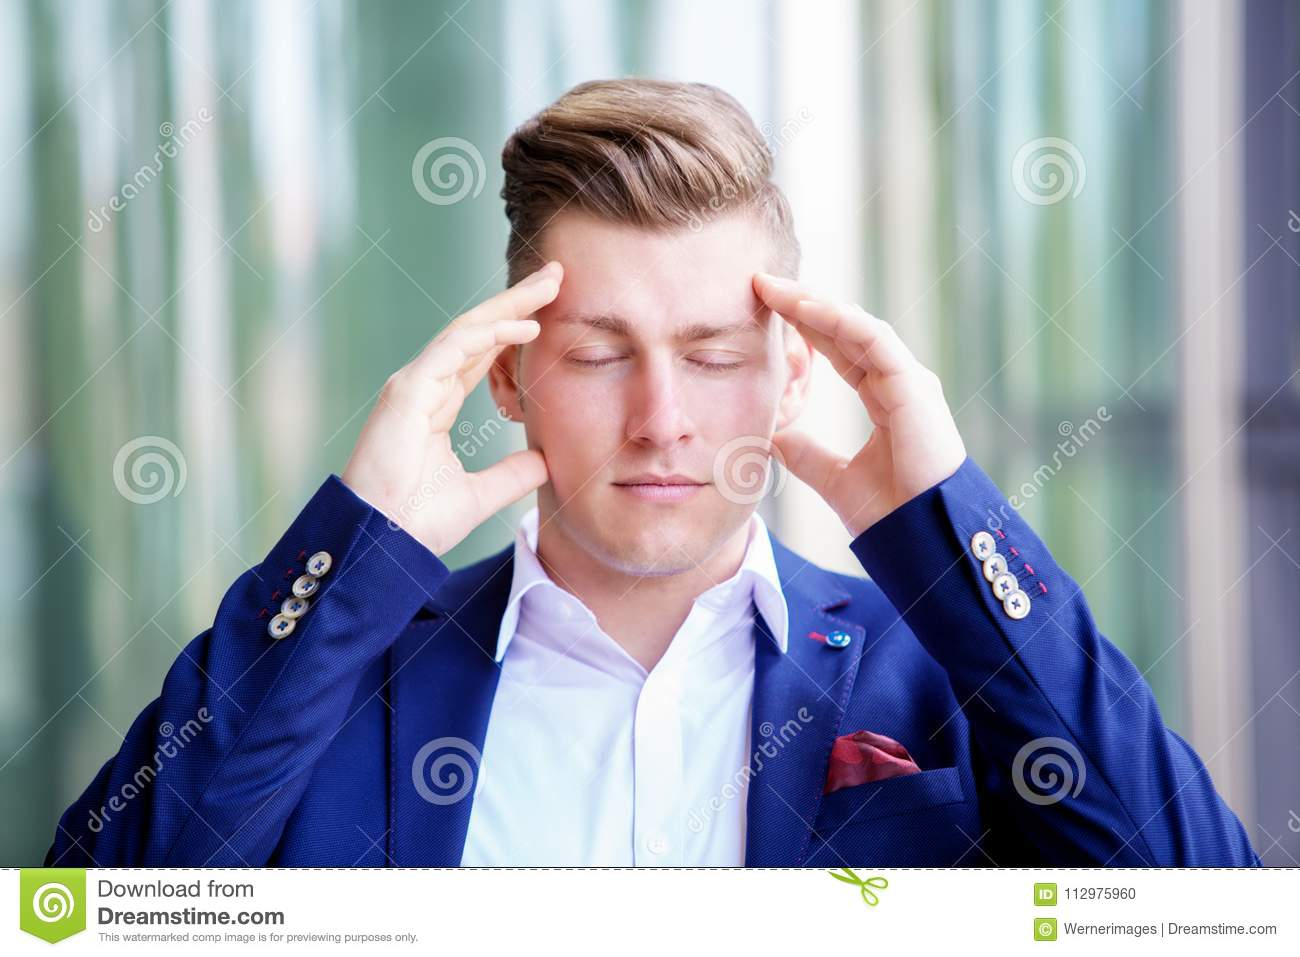 Blond businessman standing outside with his eyes closed